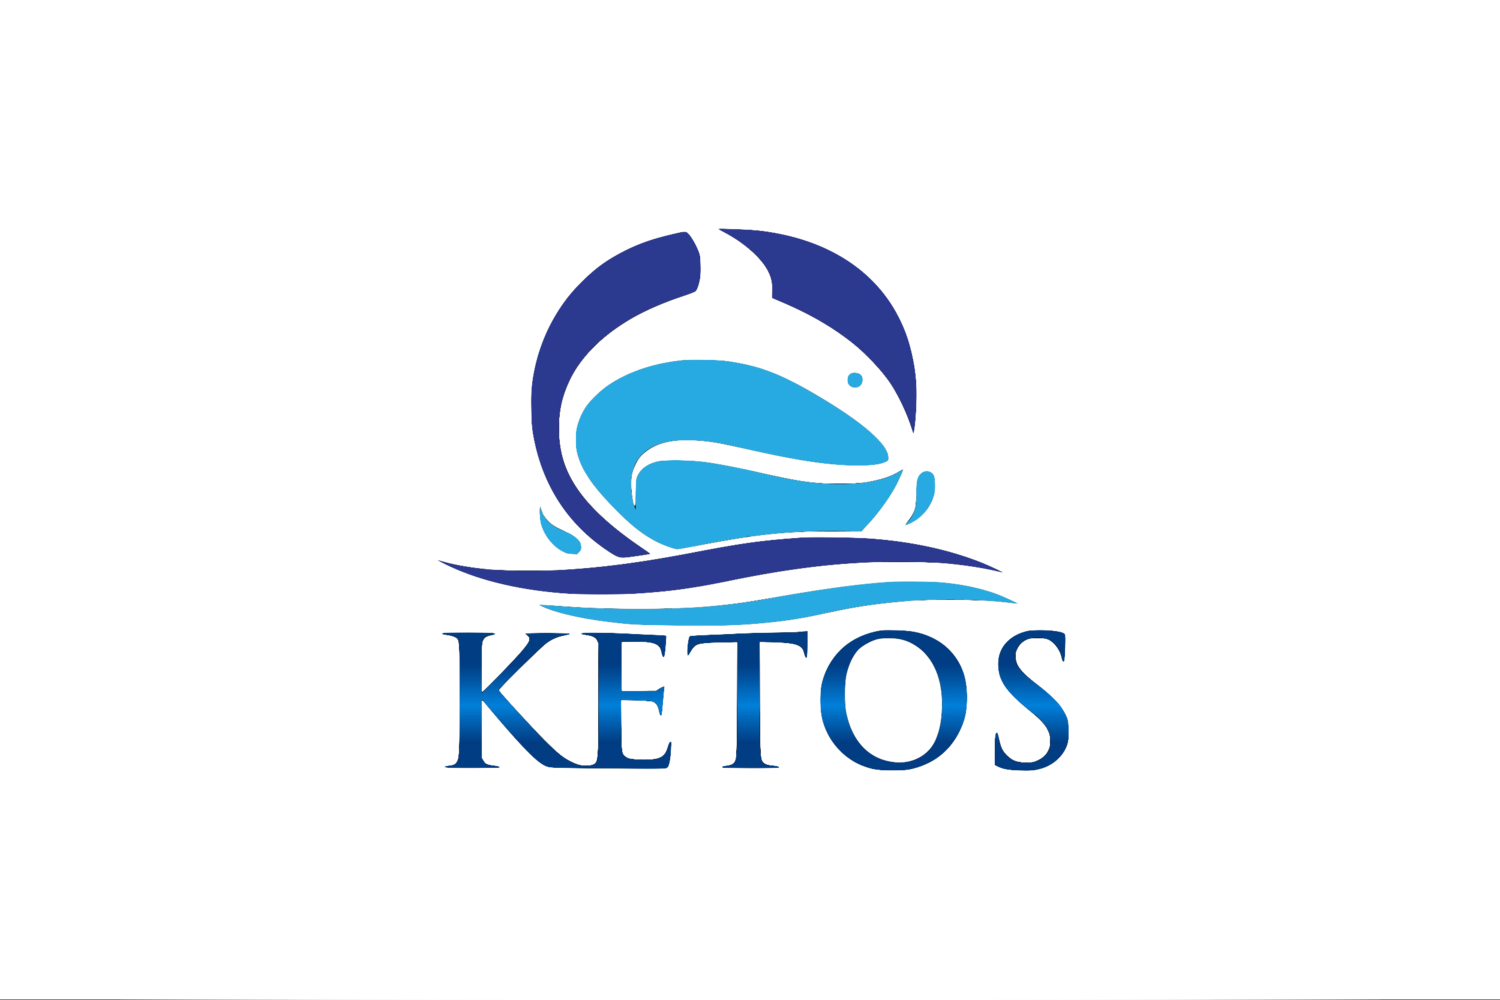 Ketos Official Website